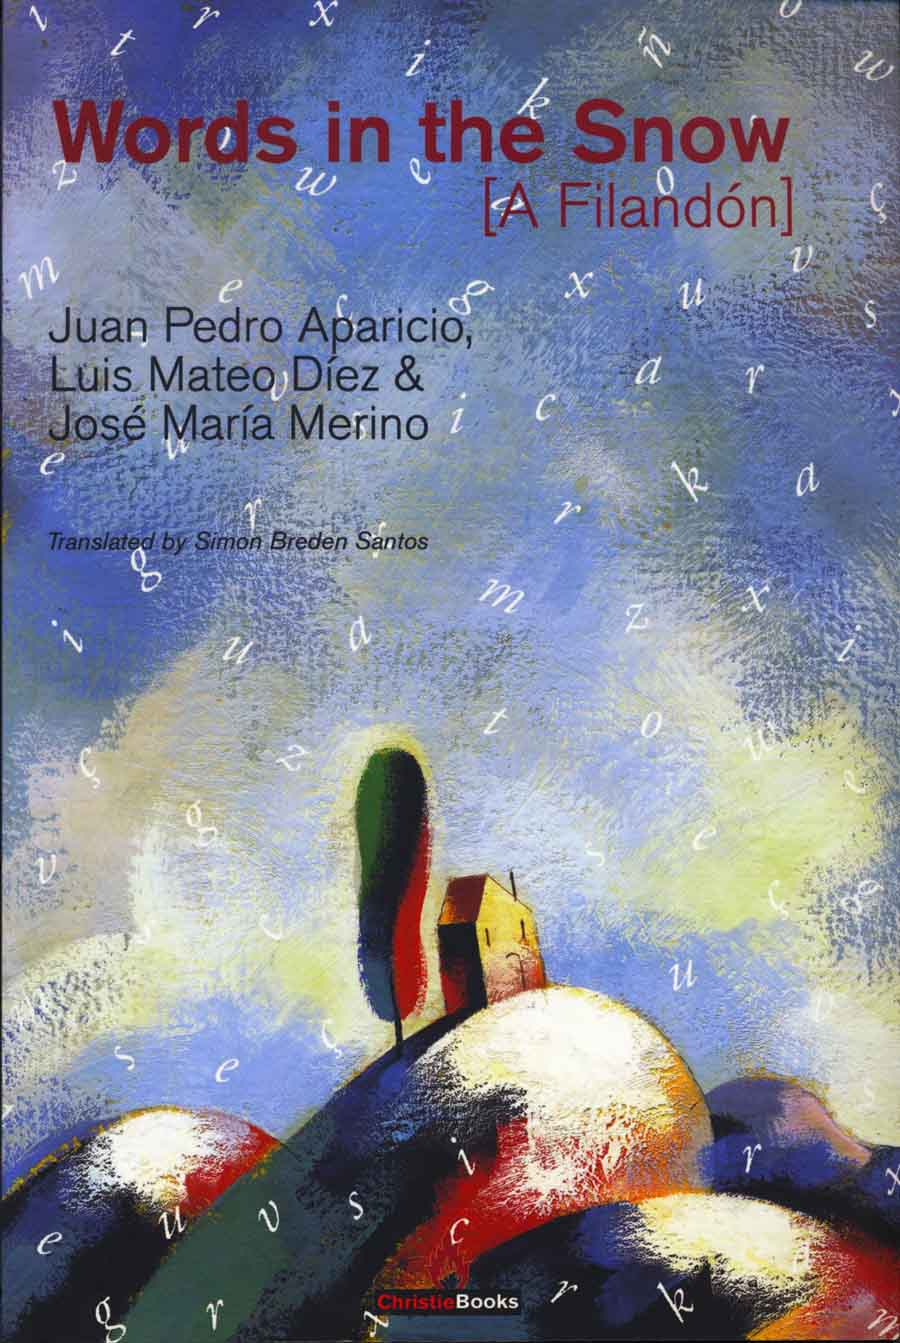 WORDS IN THE SNOW [A FILANDÓN] — Juan Pedro Aparicio, Luis Mateo Díez and José María Merino